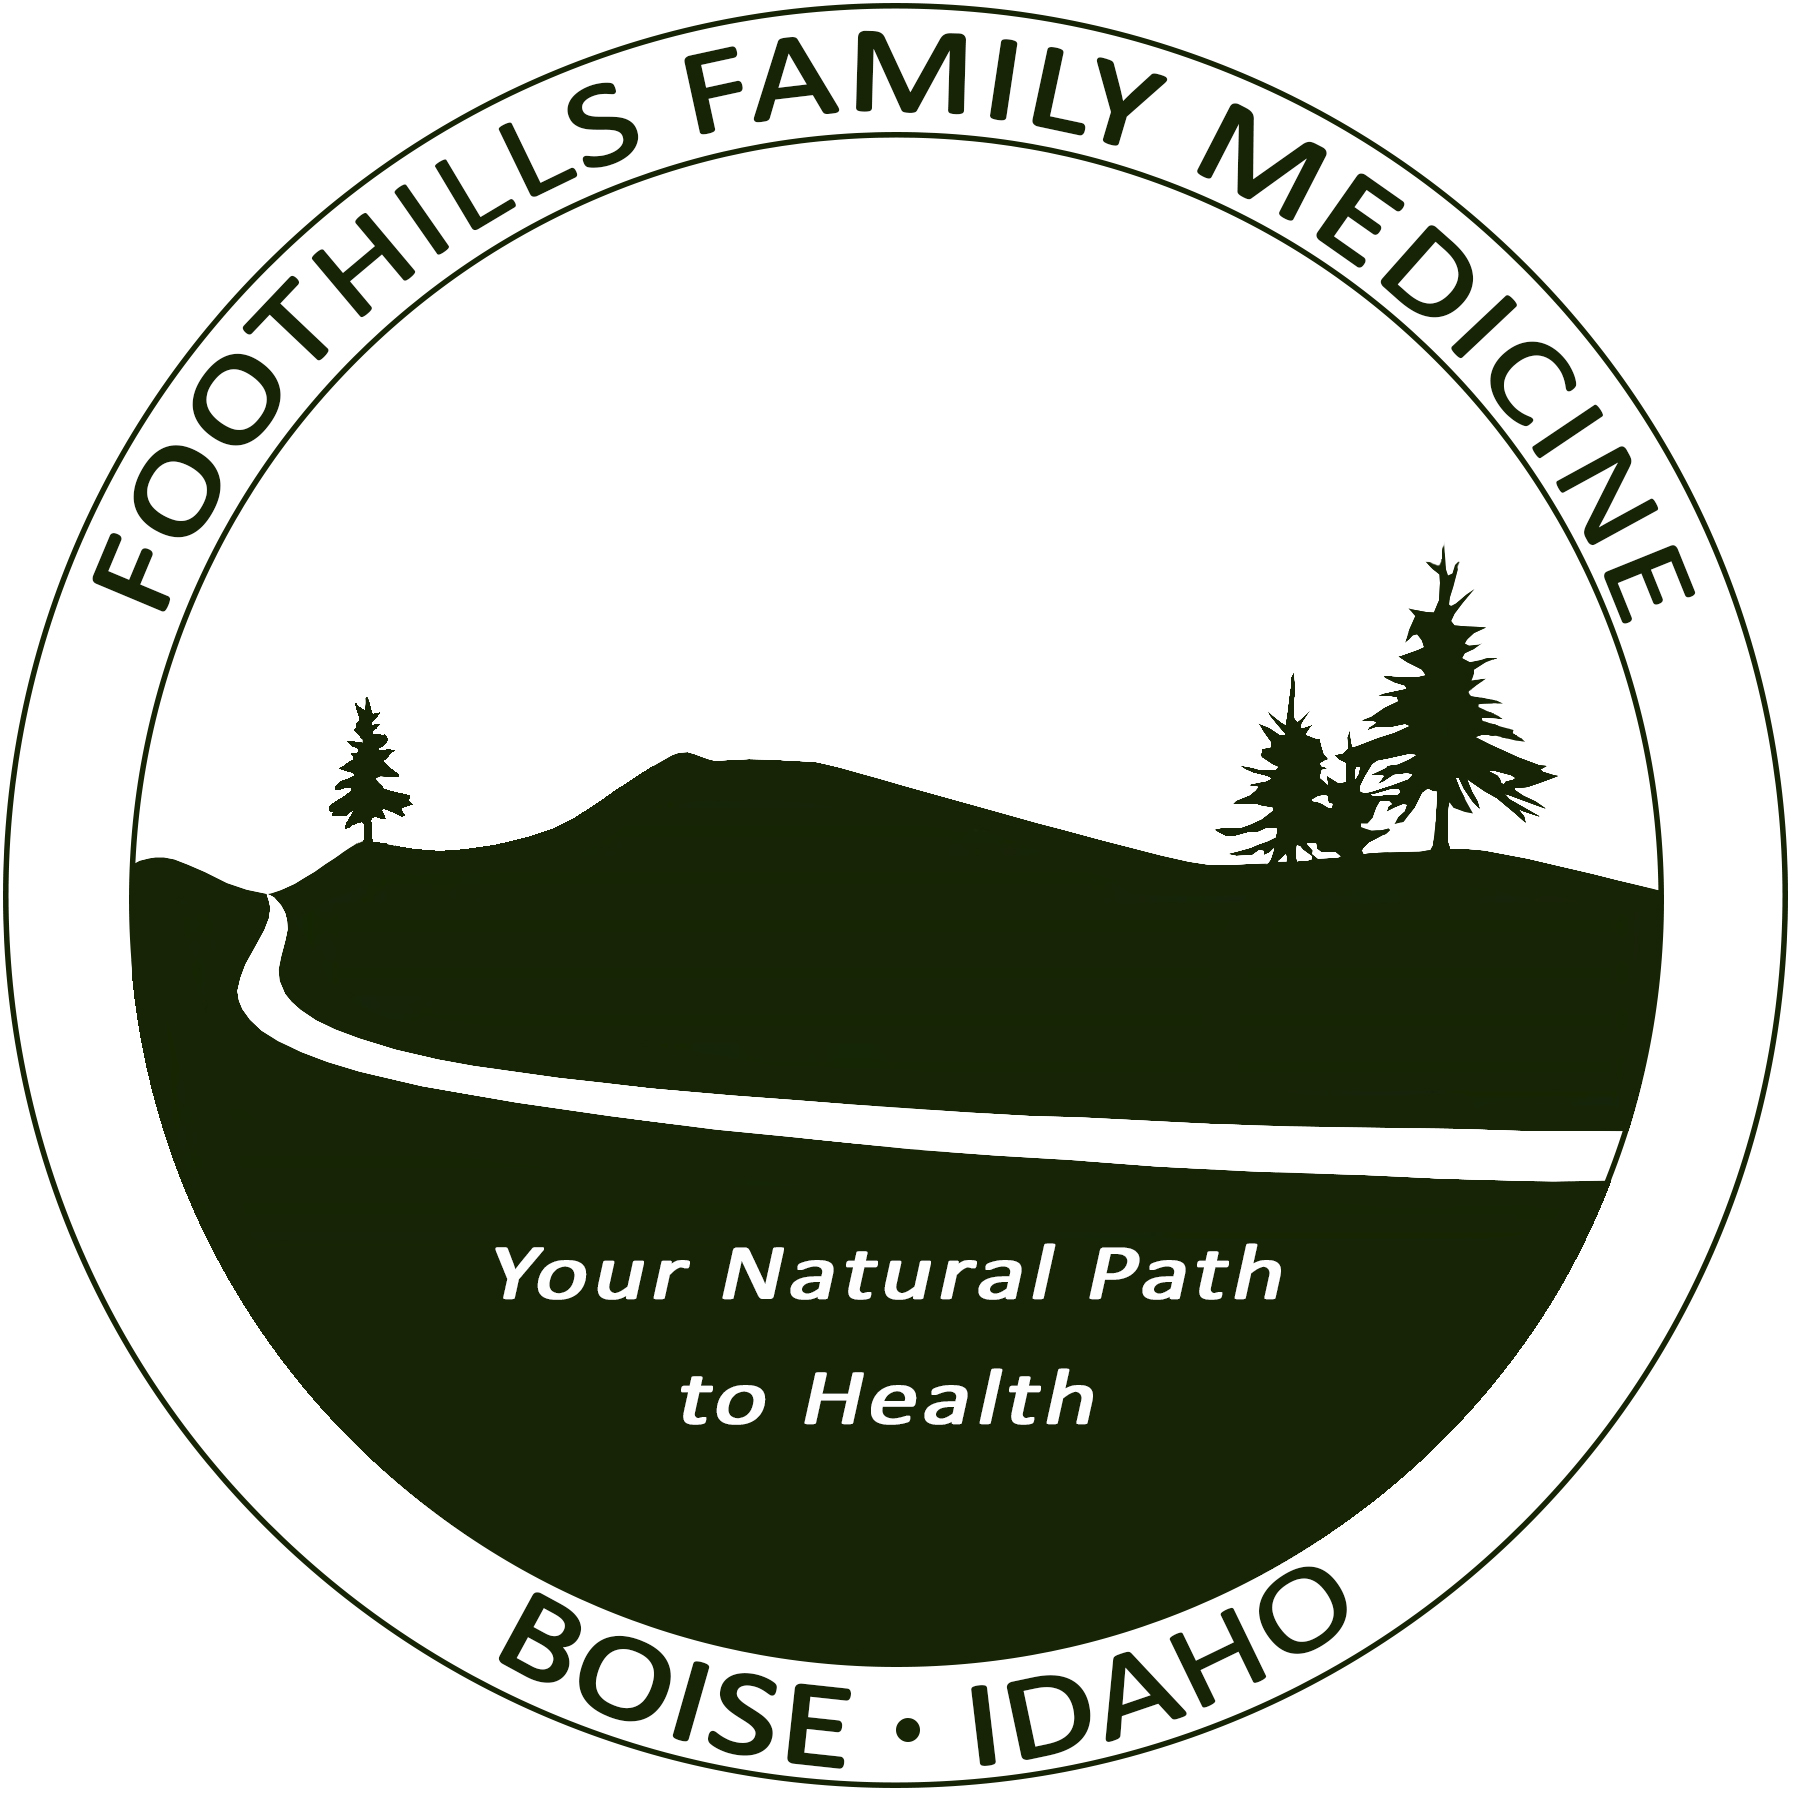 Foothills Family Medicine